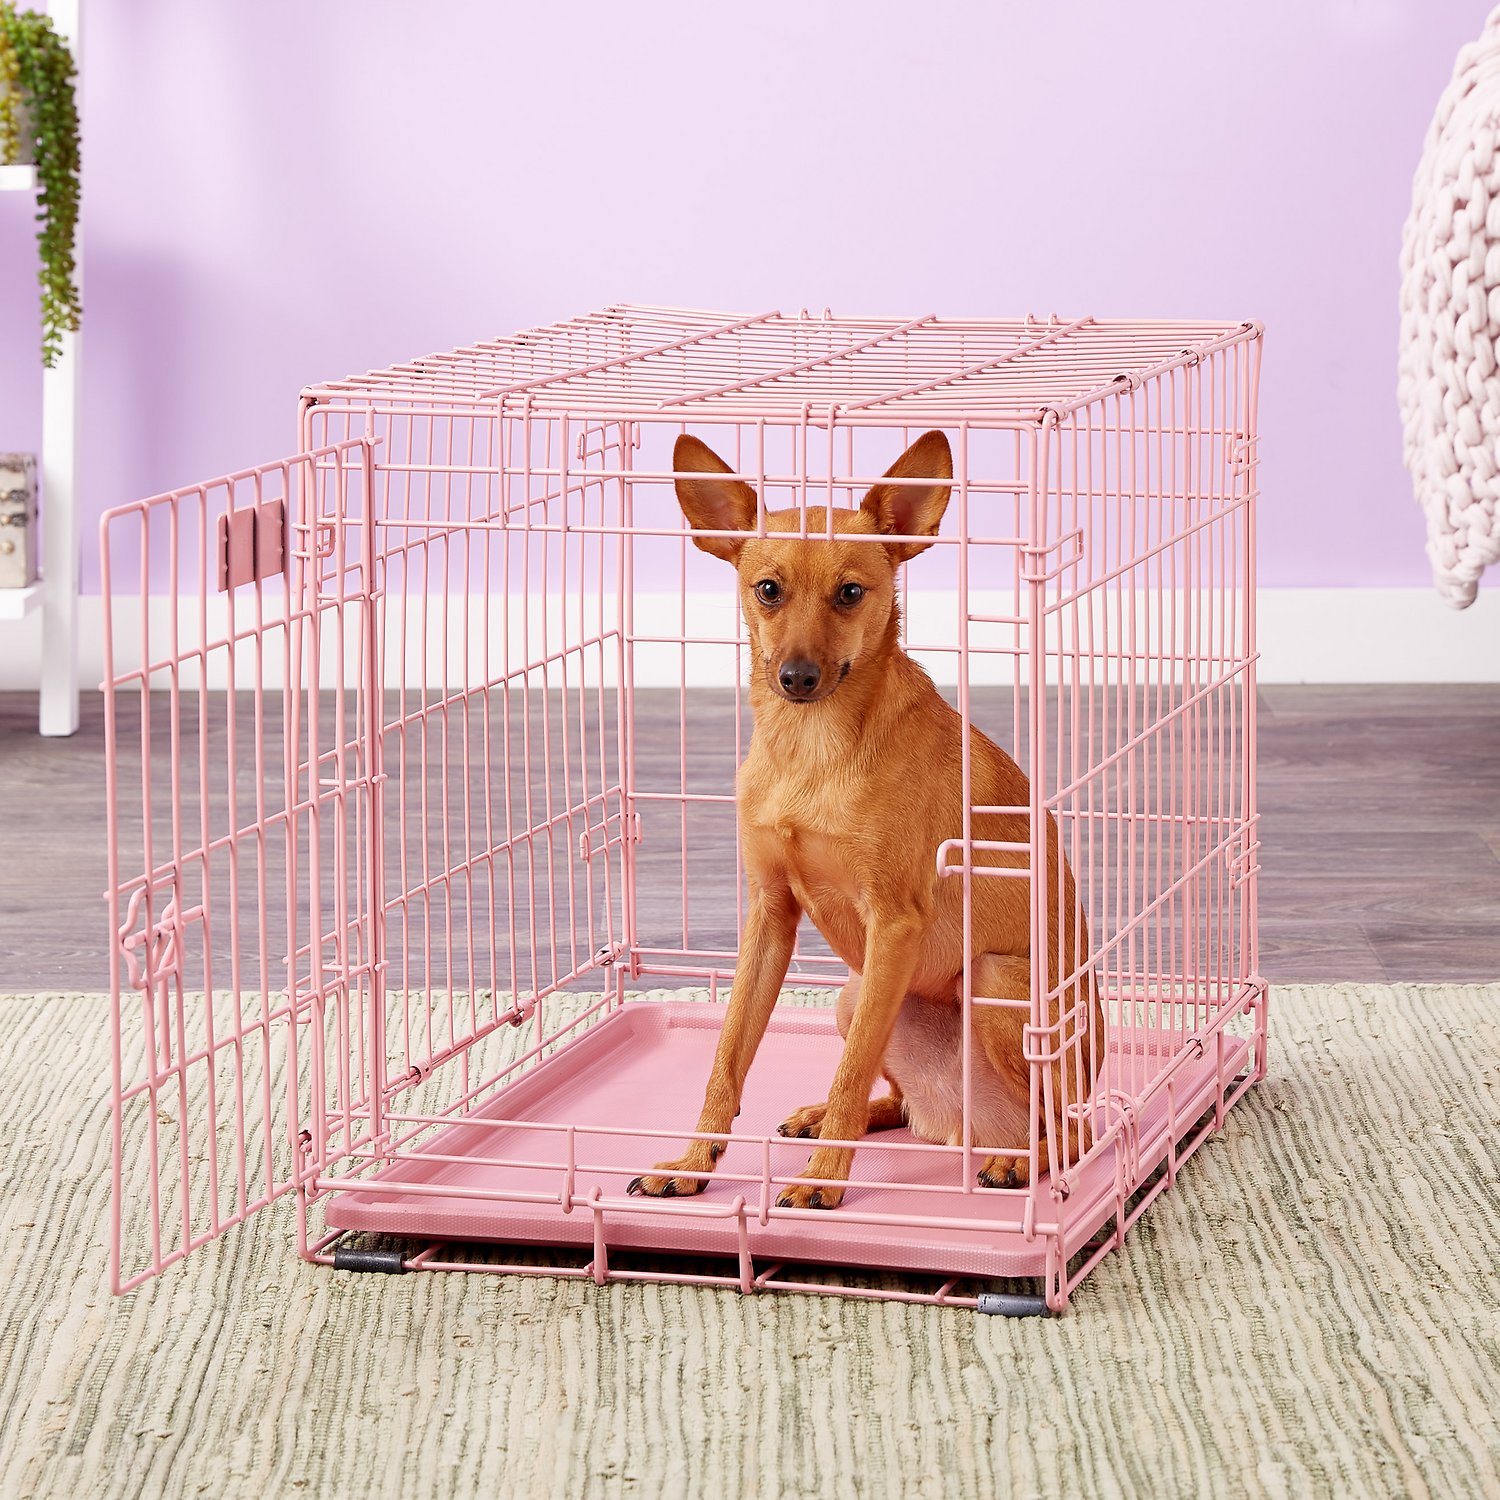 Midwest Icrate Single Door Dog Crate, Pink